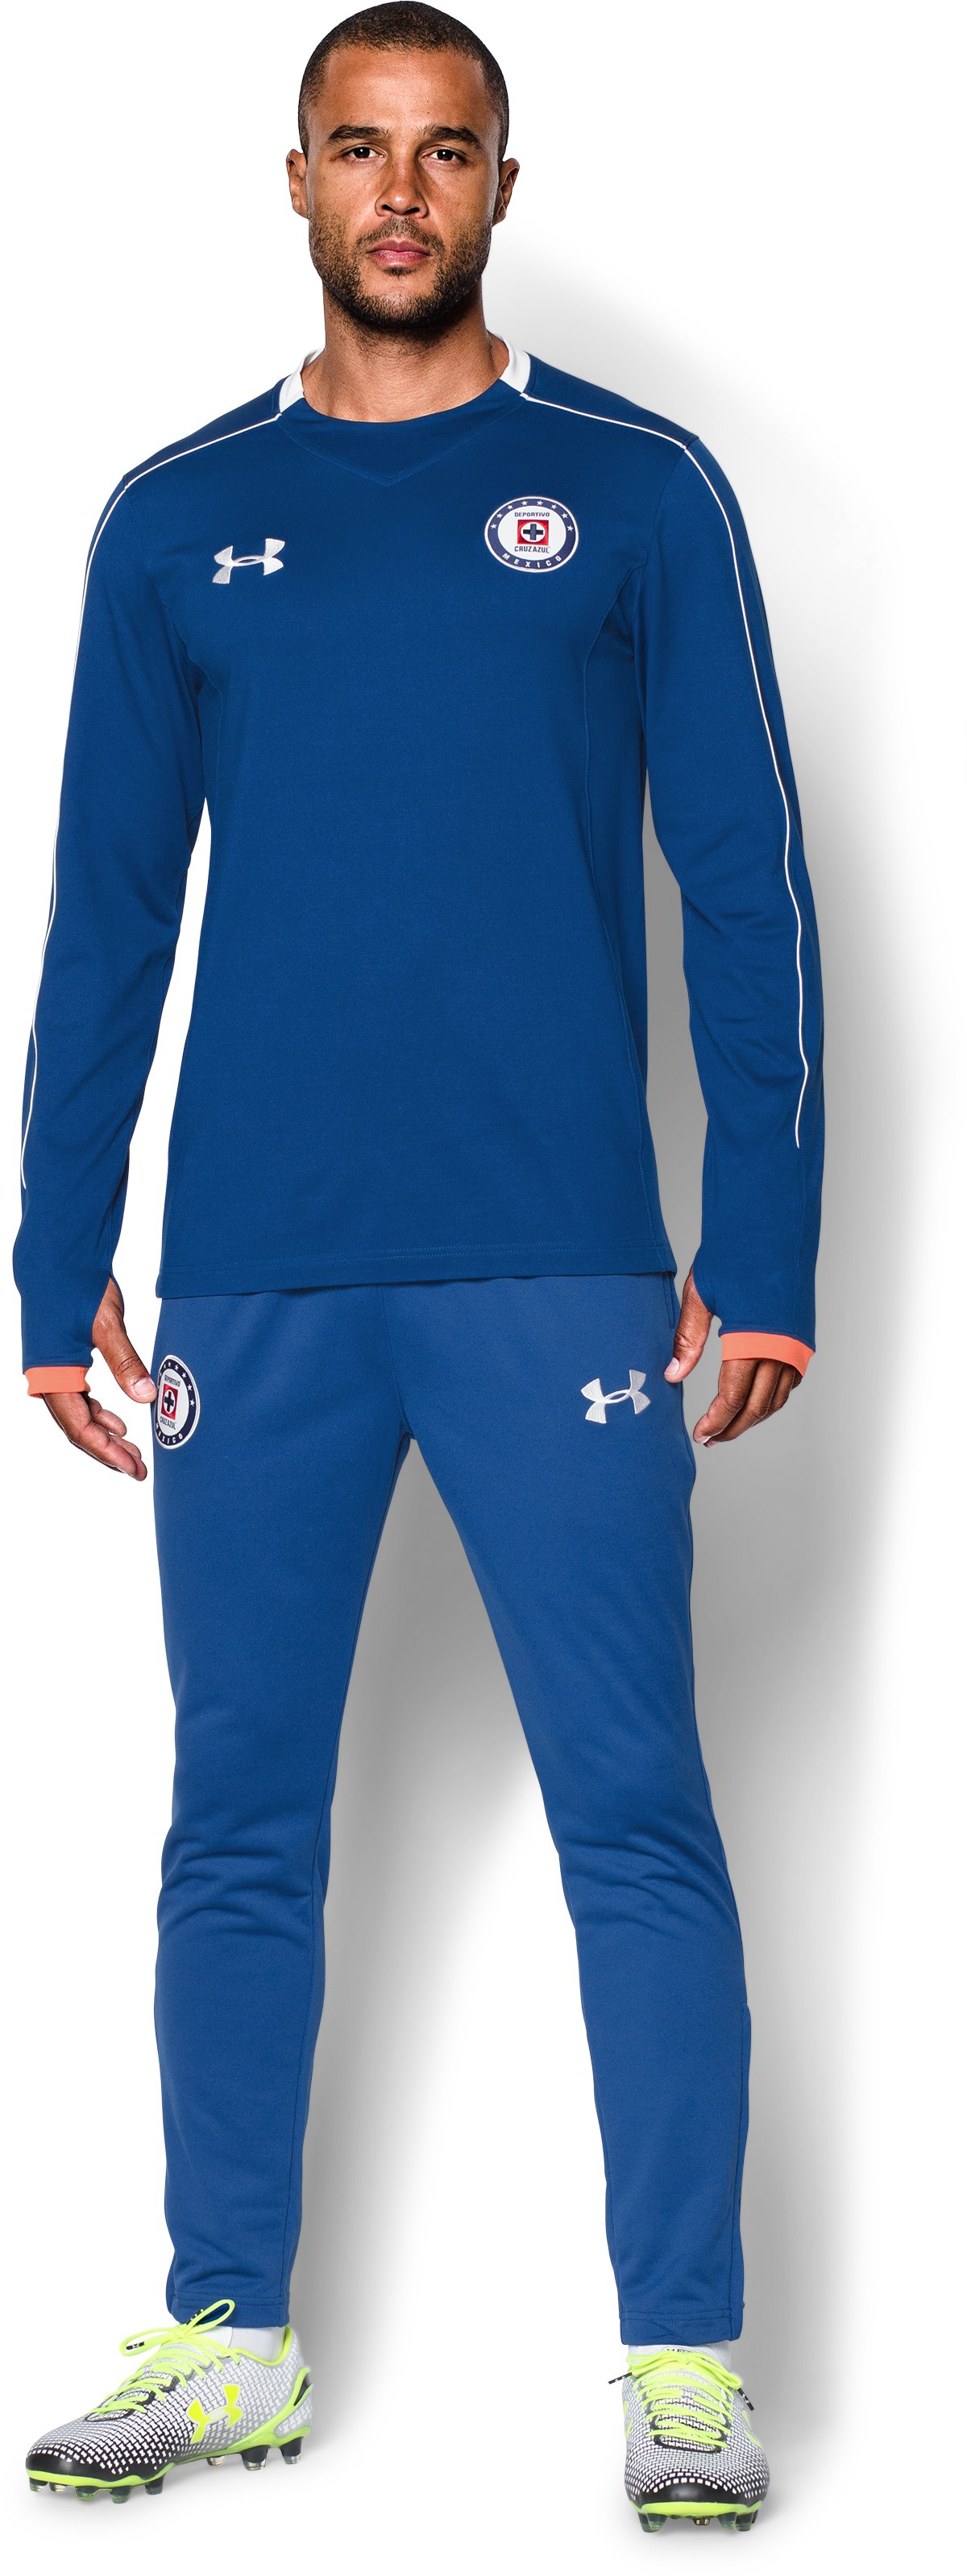 Men's Cruz Azul 15/16 Midlayer Crew, Royal